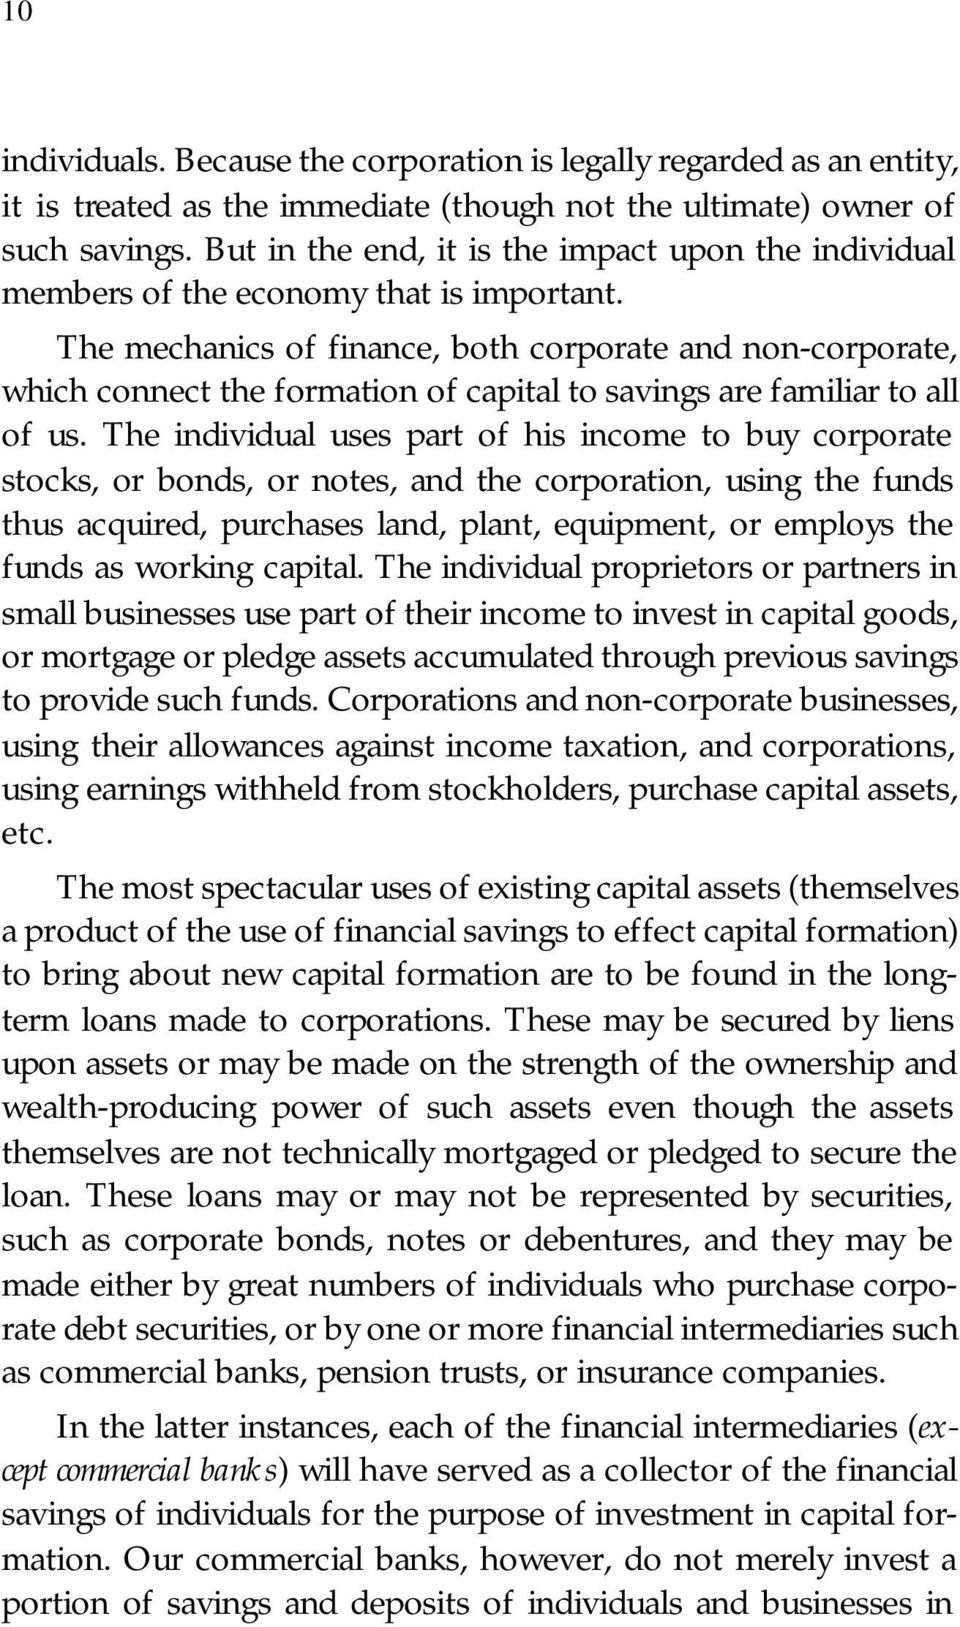 The mechanics of finance, both corporate and non-corporate, which connect the formation of capital to savings are familiar to all of us.